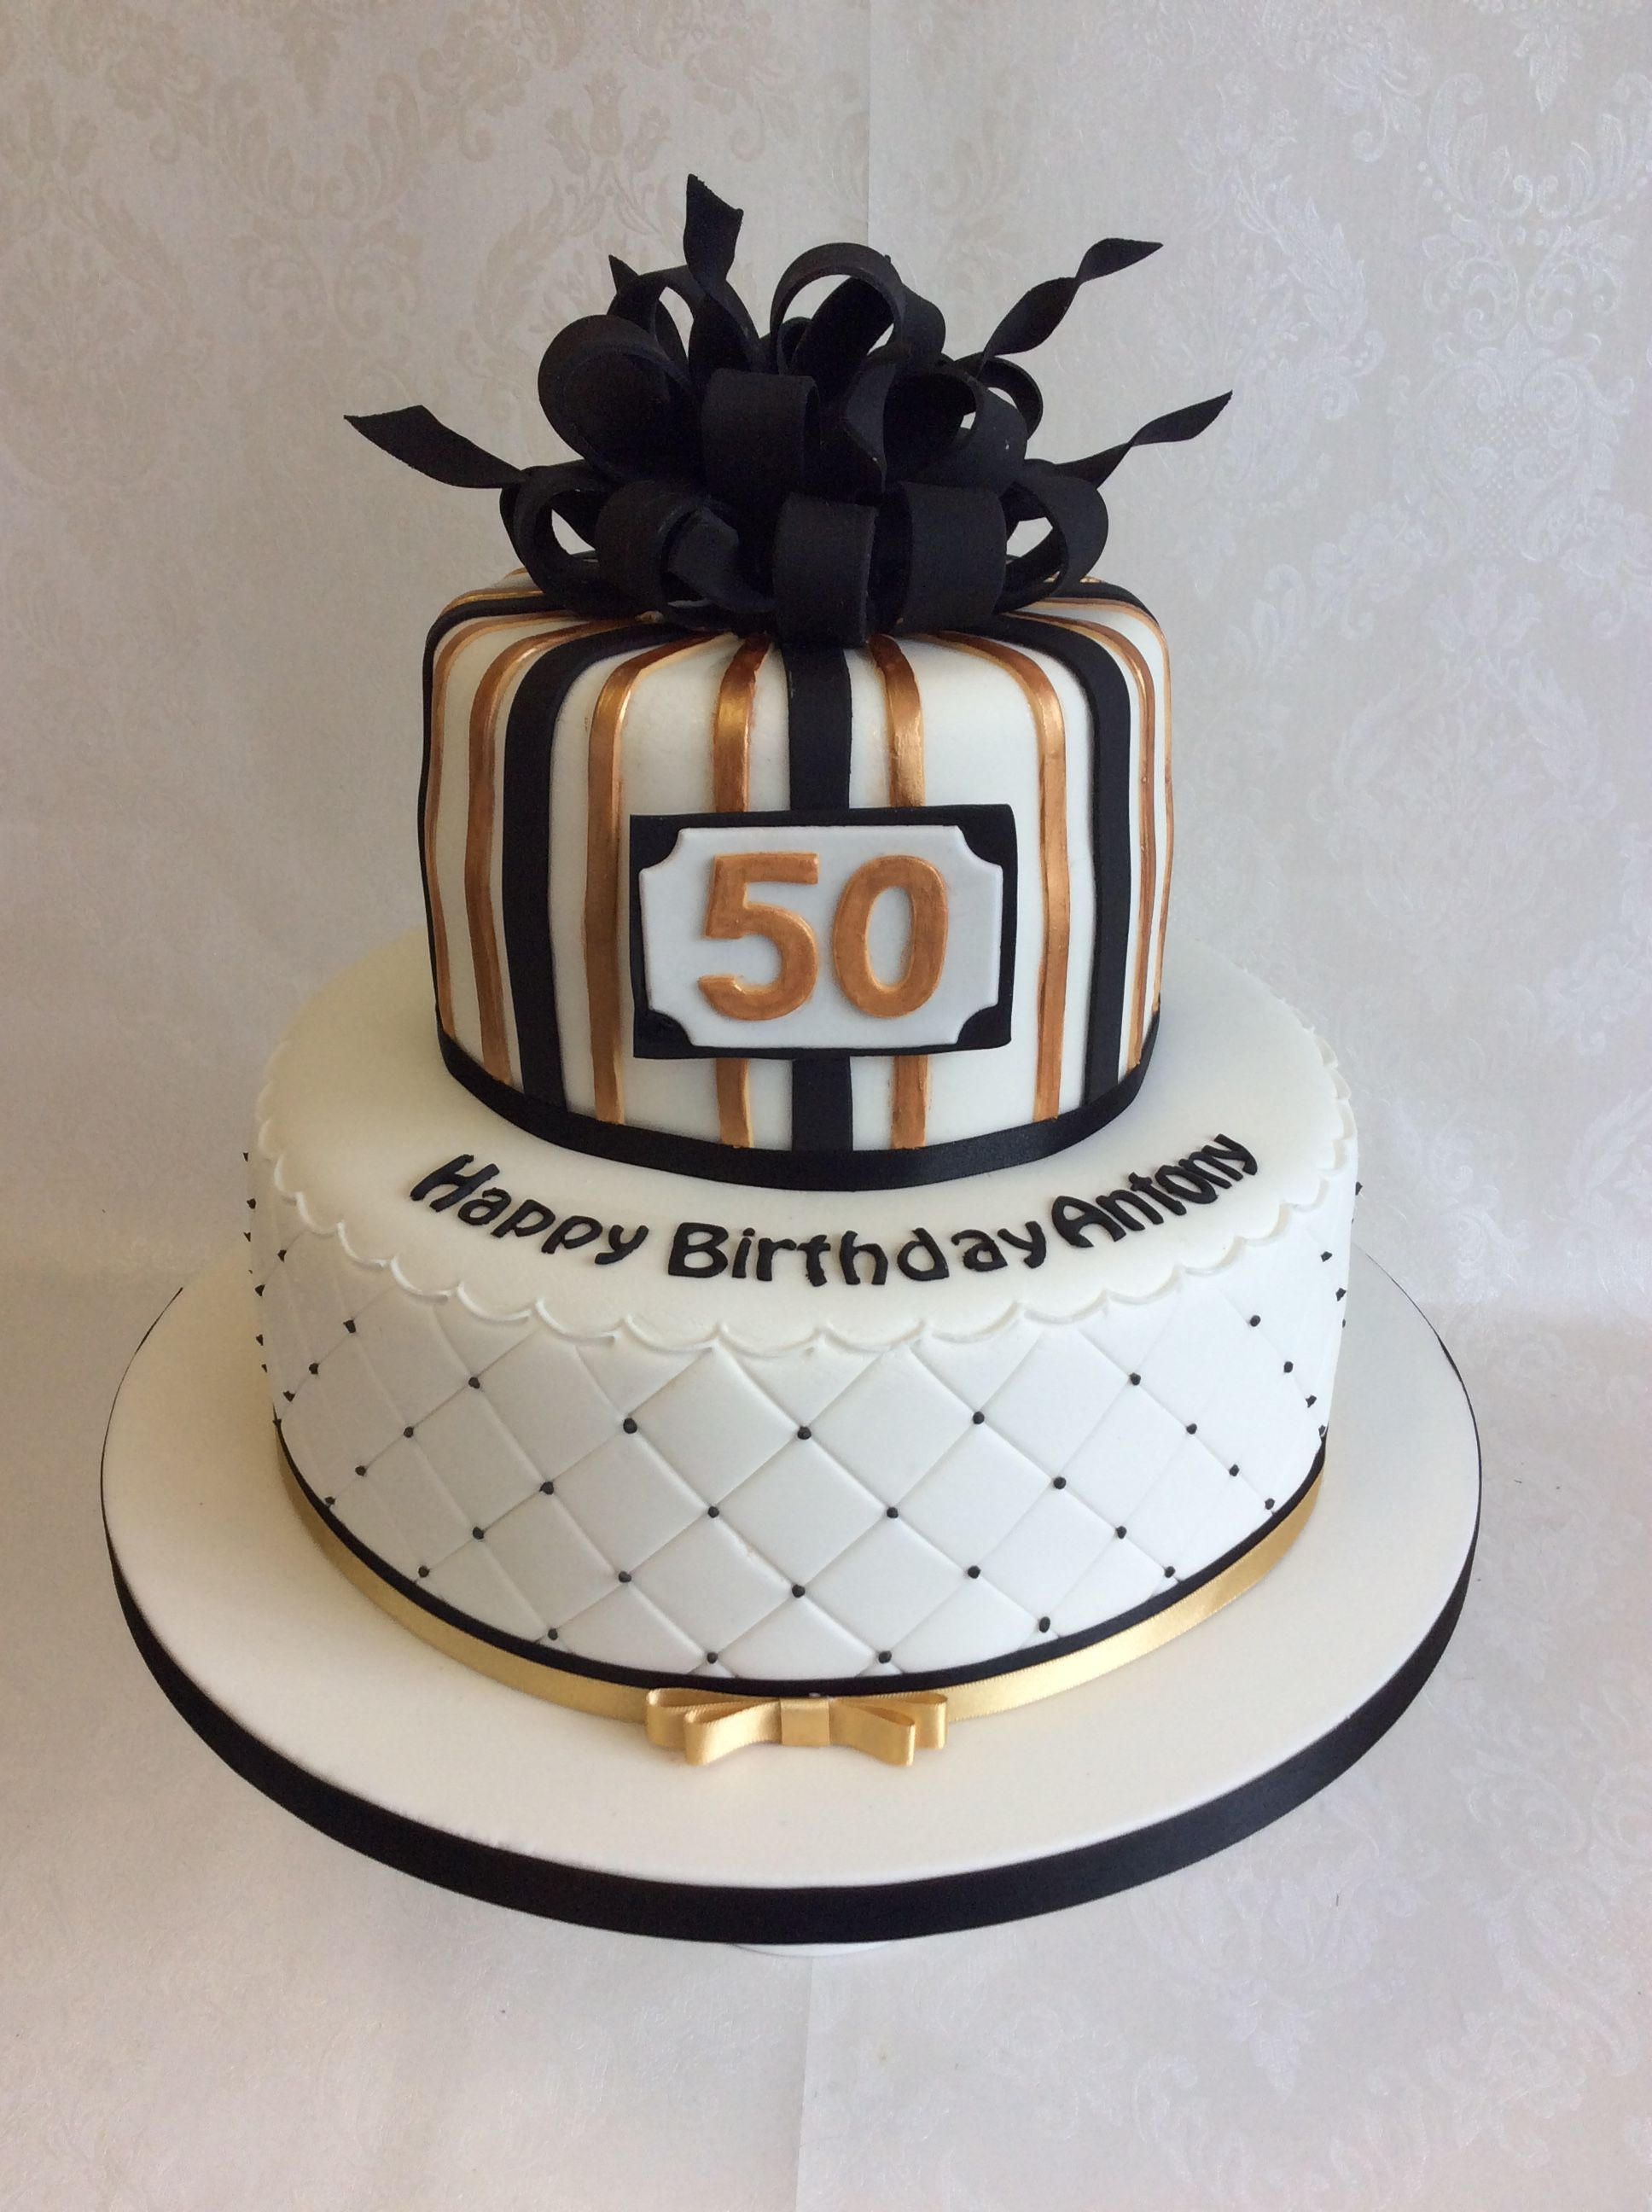 Parcel Style Top Tier For This 2 Tier Black And Gold